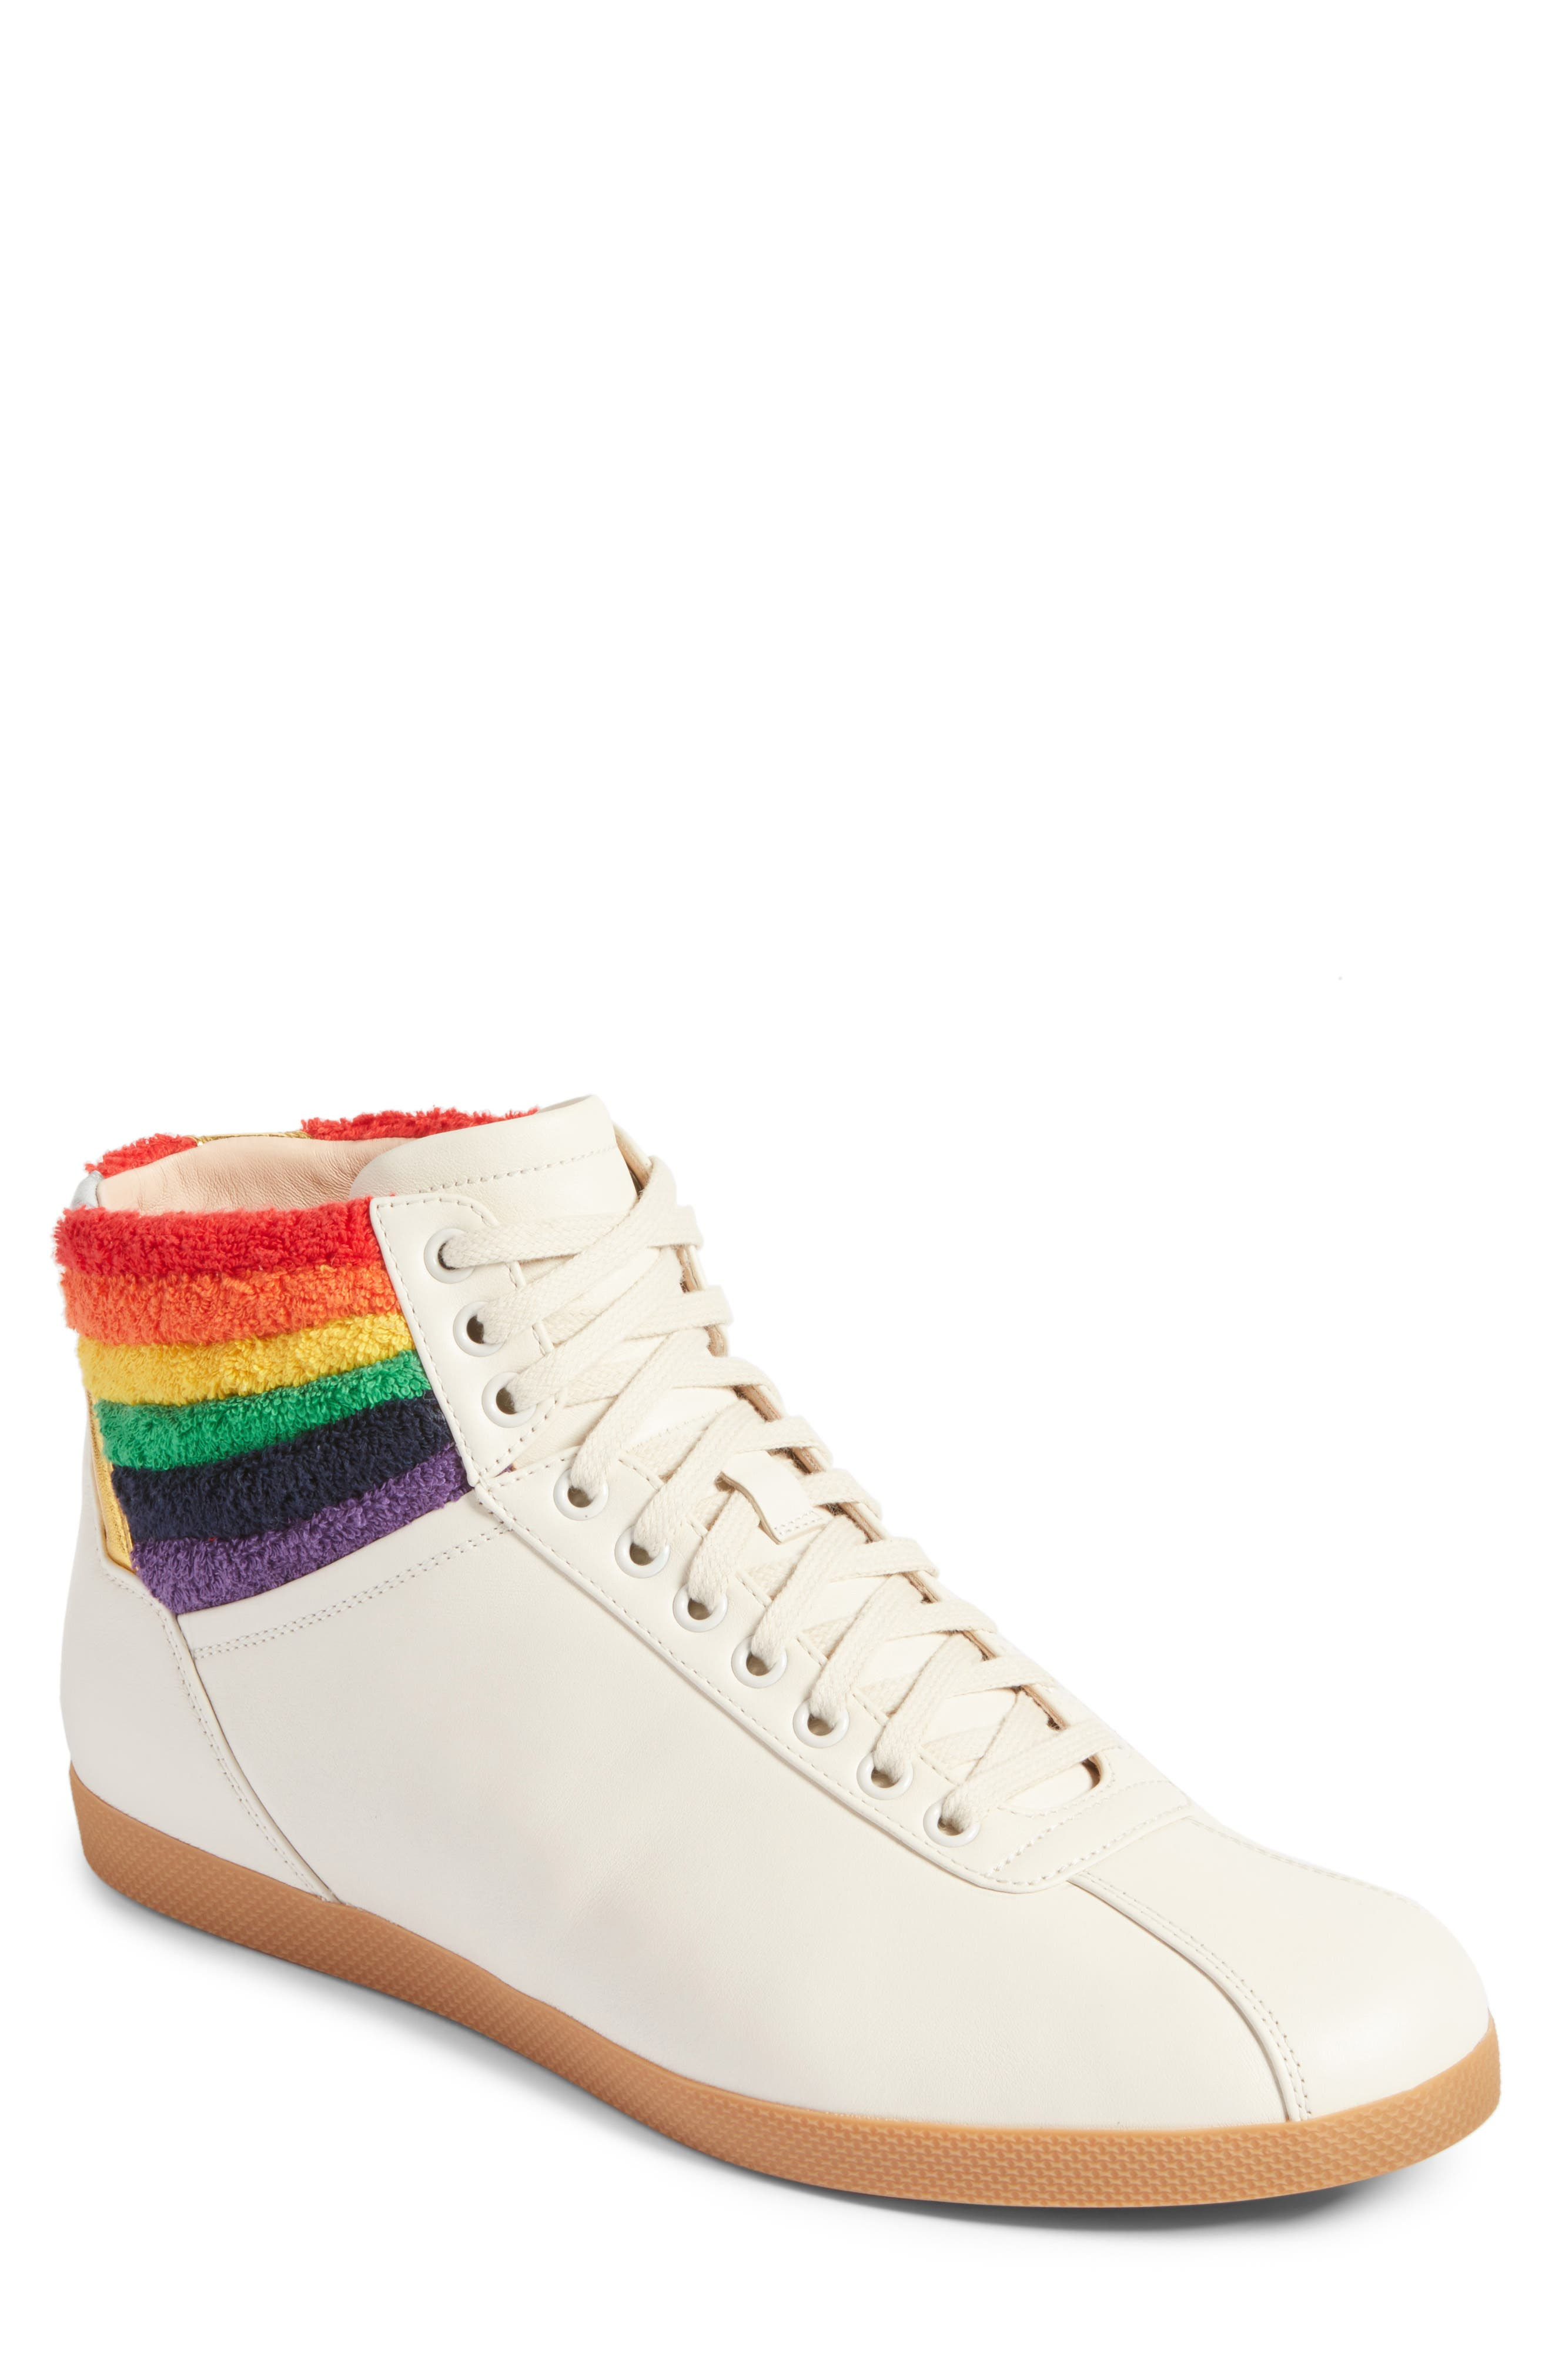 Alternate Image 1 Selected - Gucci Bambi Rainbow Terry High Top Sneaker (Men)